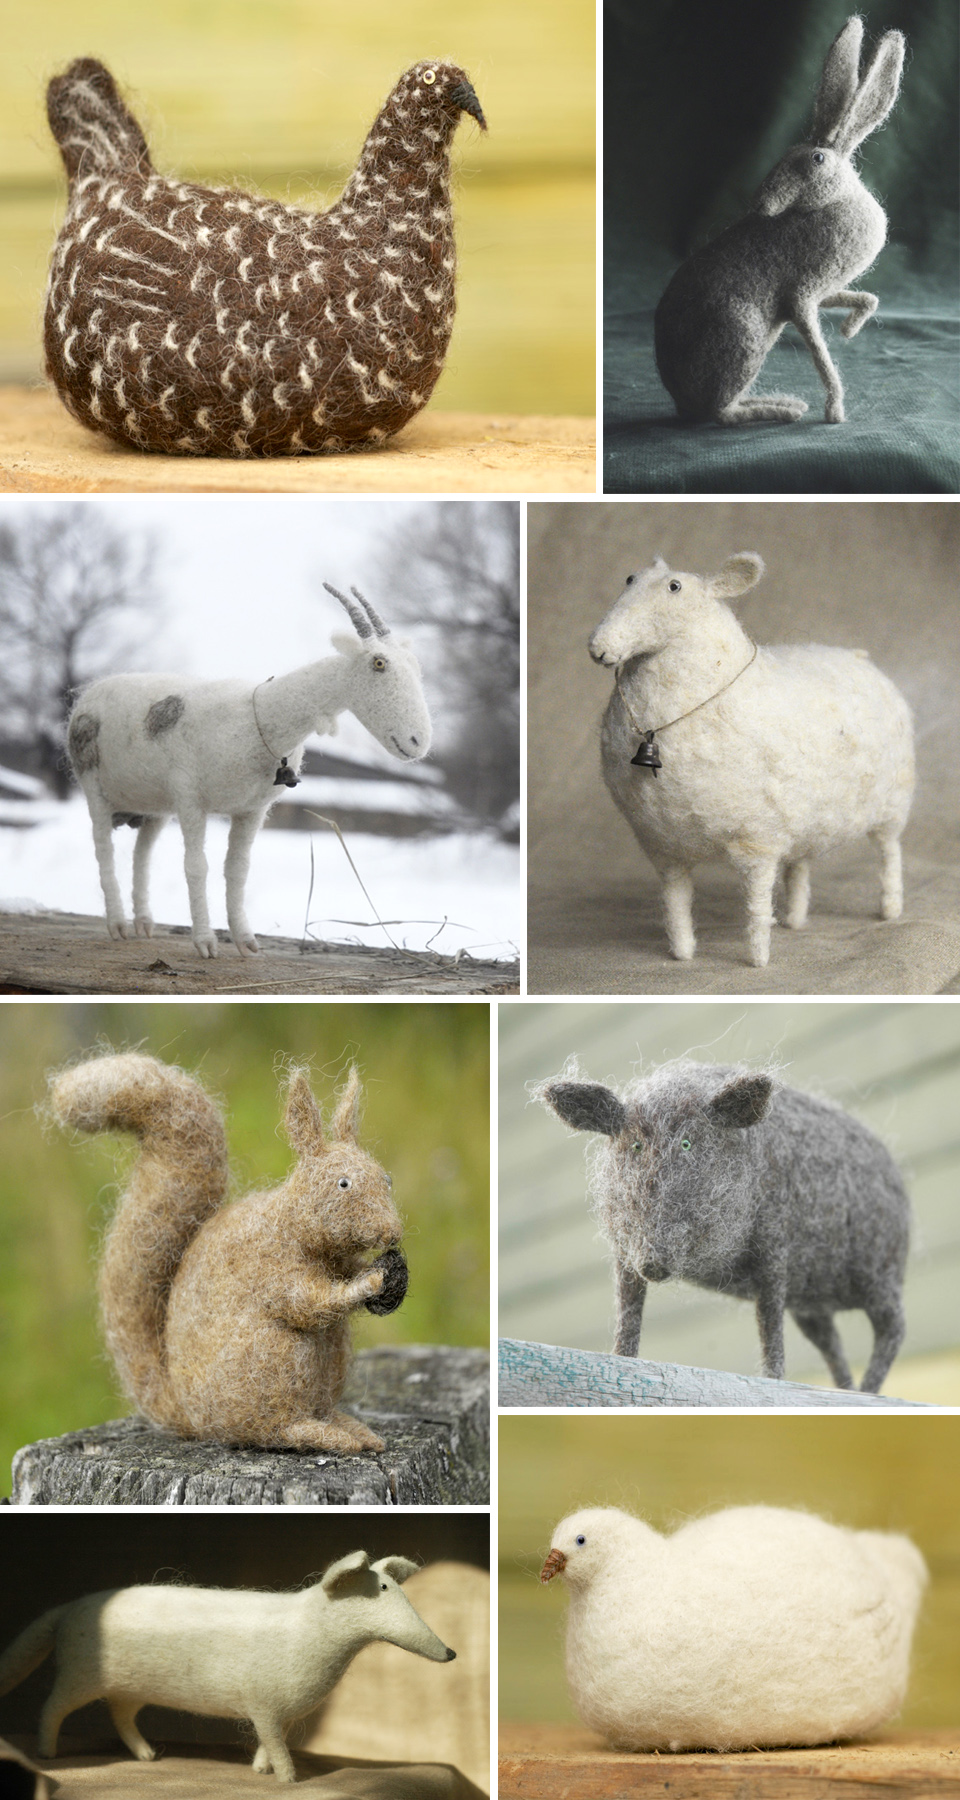 victor dubrovsky's felted animals